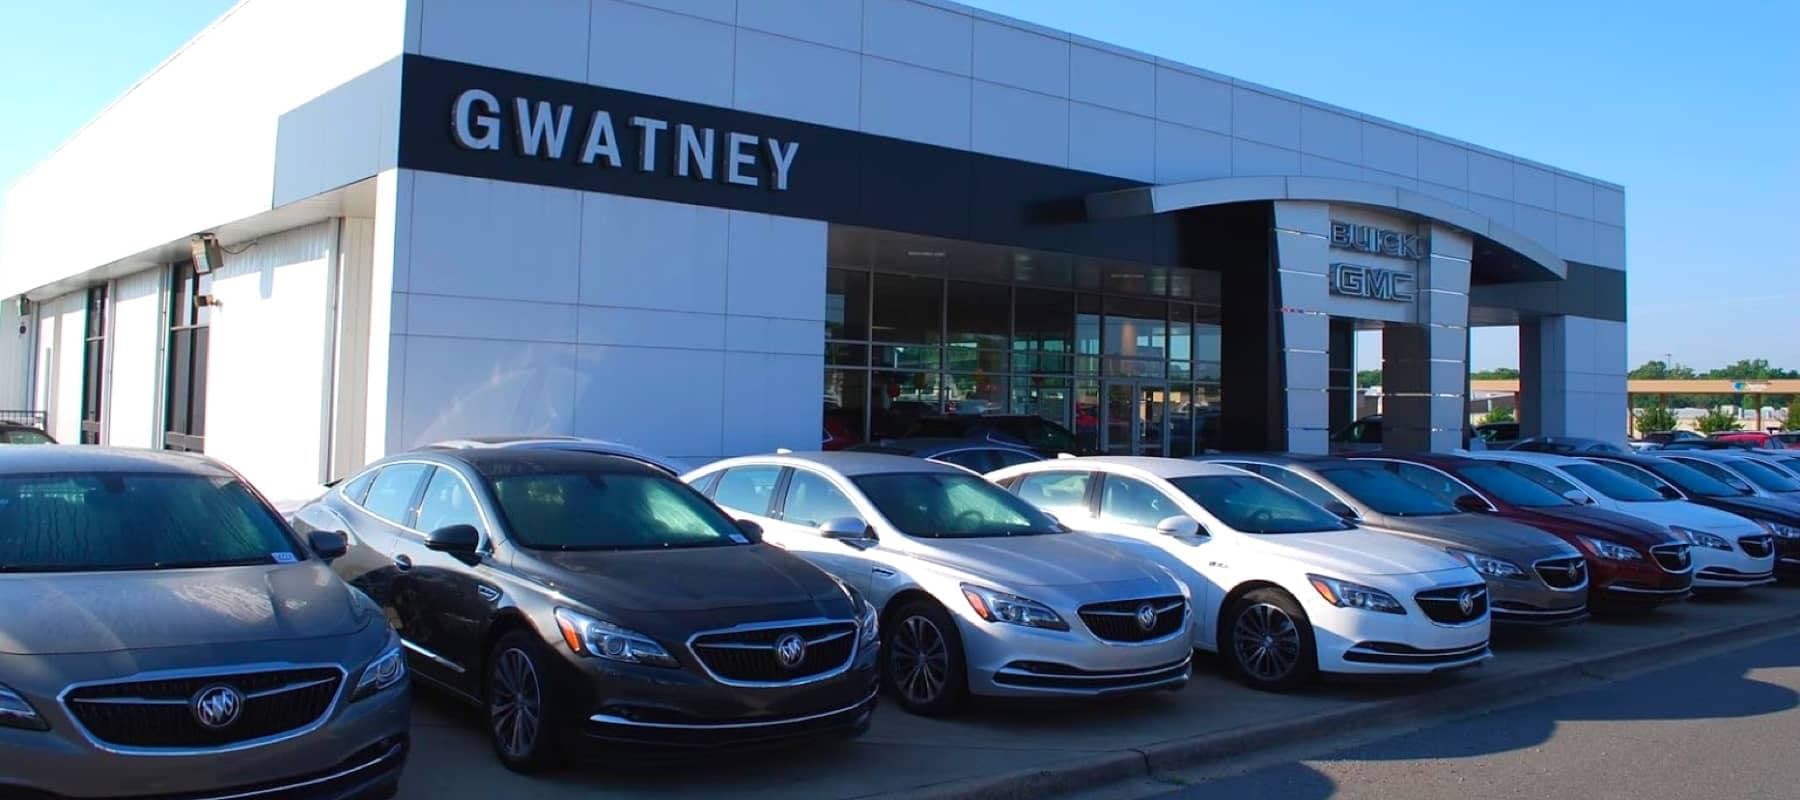 Gwatney Dealership viewed from the front